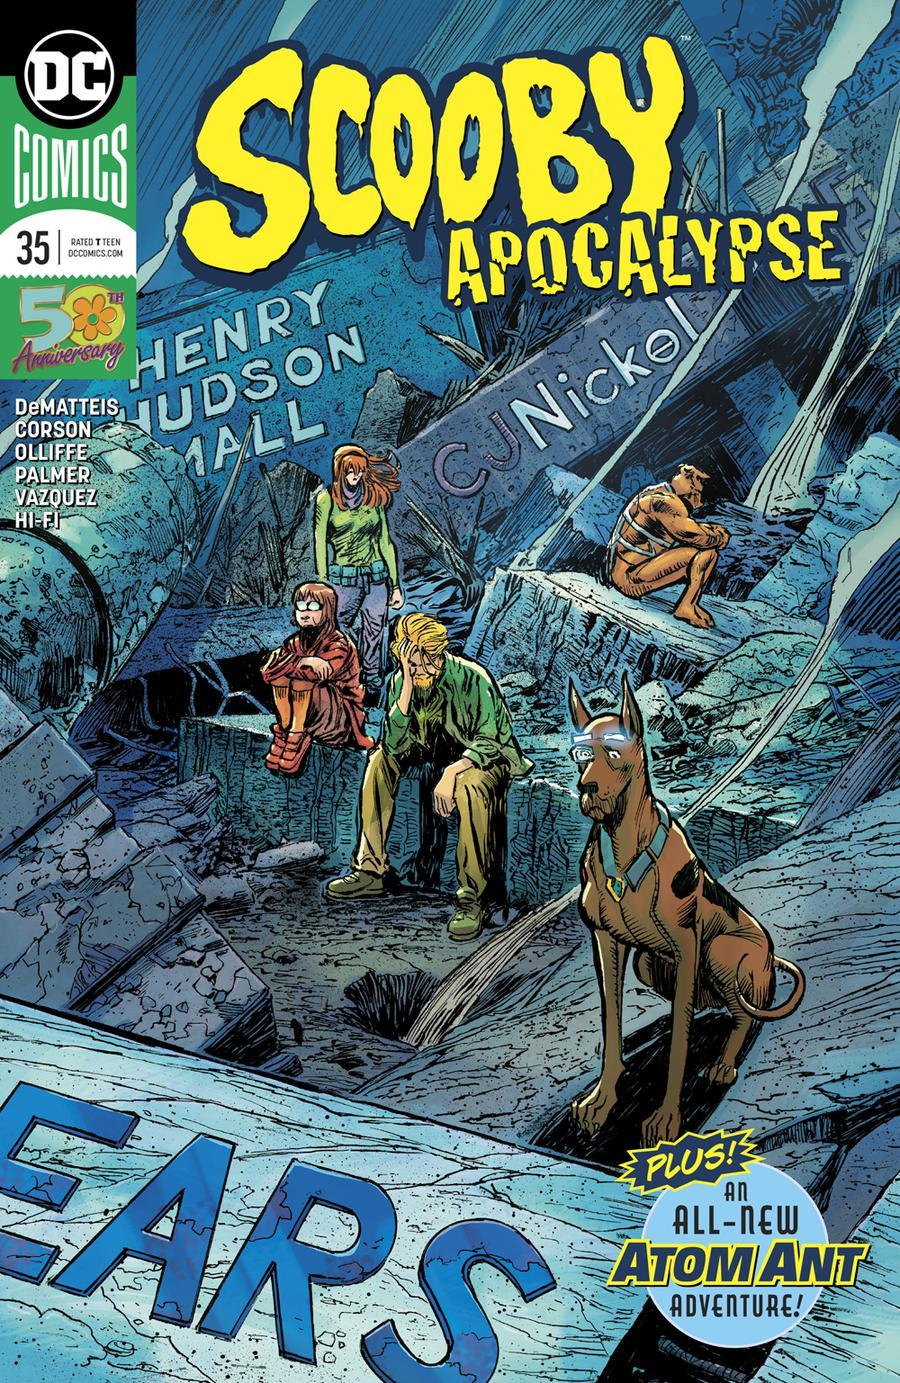 Scooby Apocalypse Vol. 1 #35